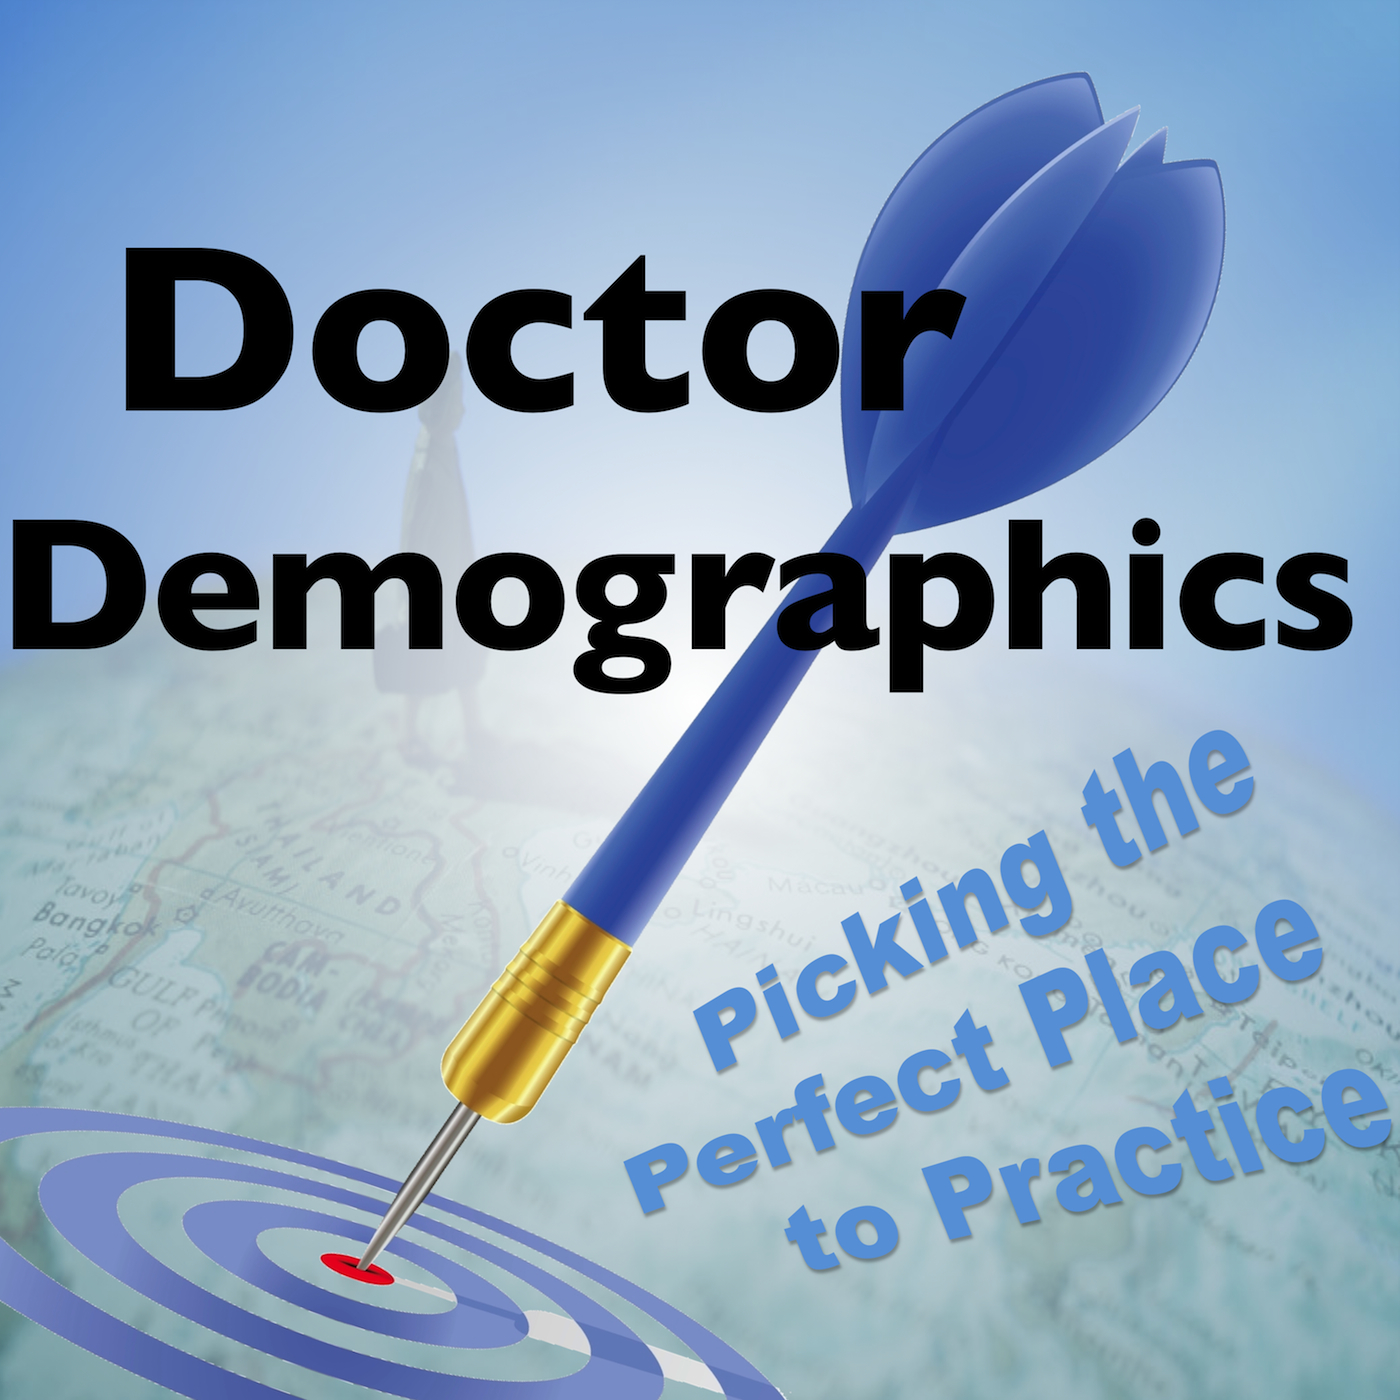 Introduction to Doctor Demographics